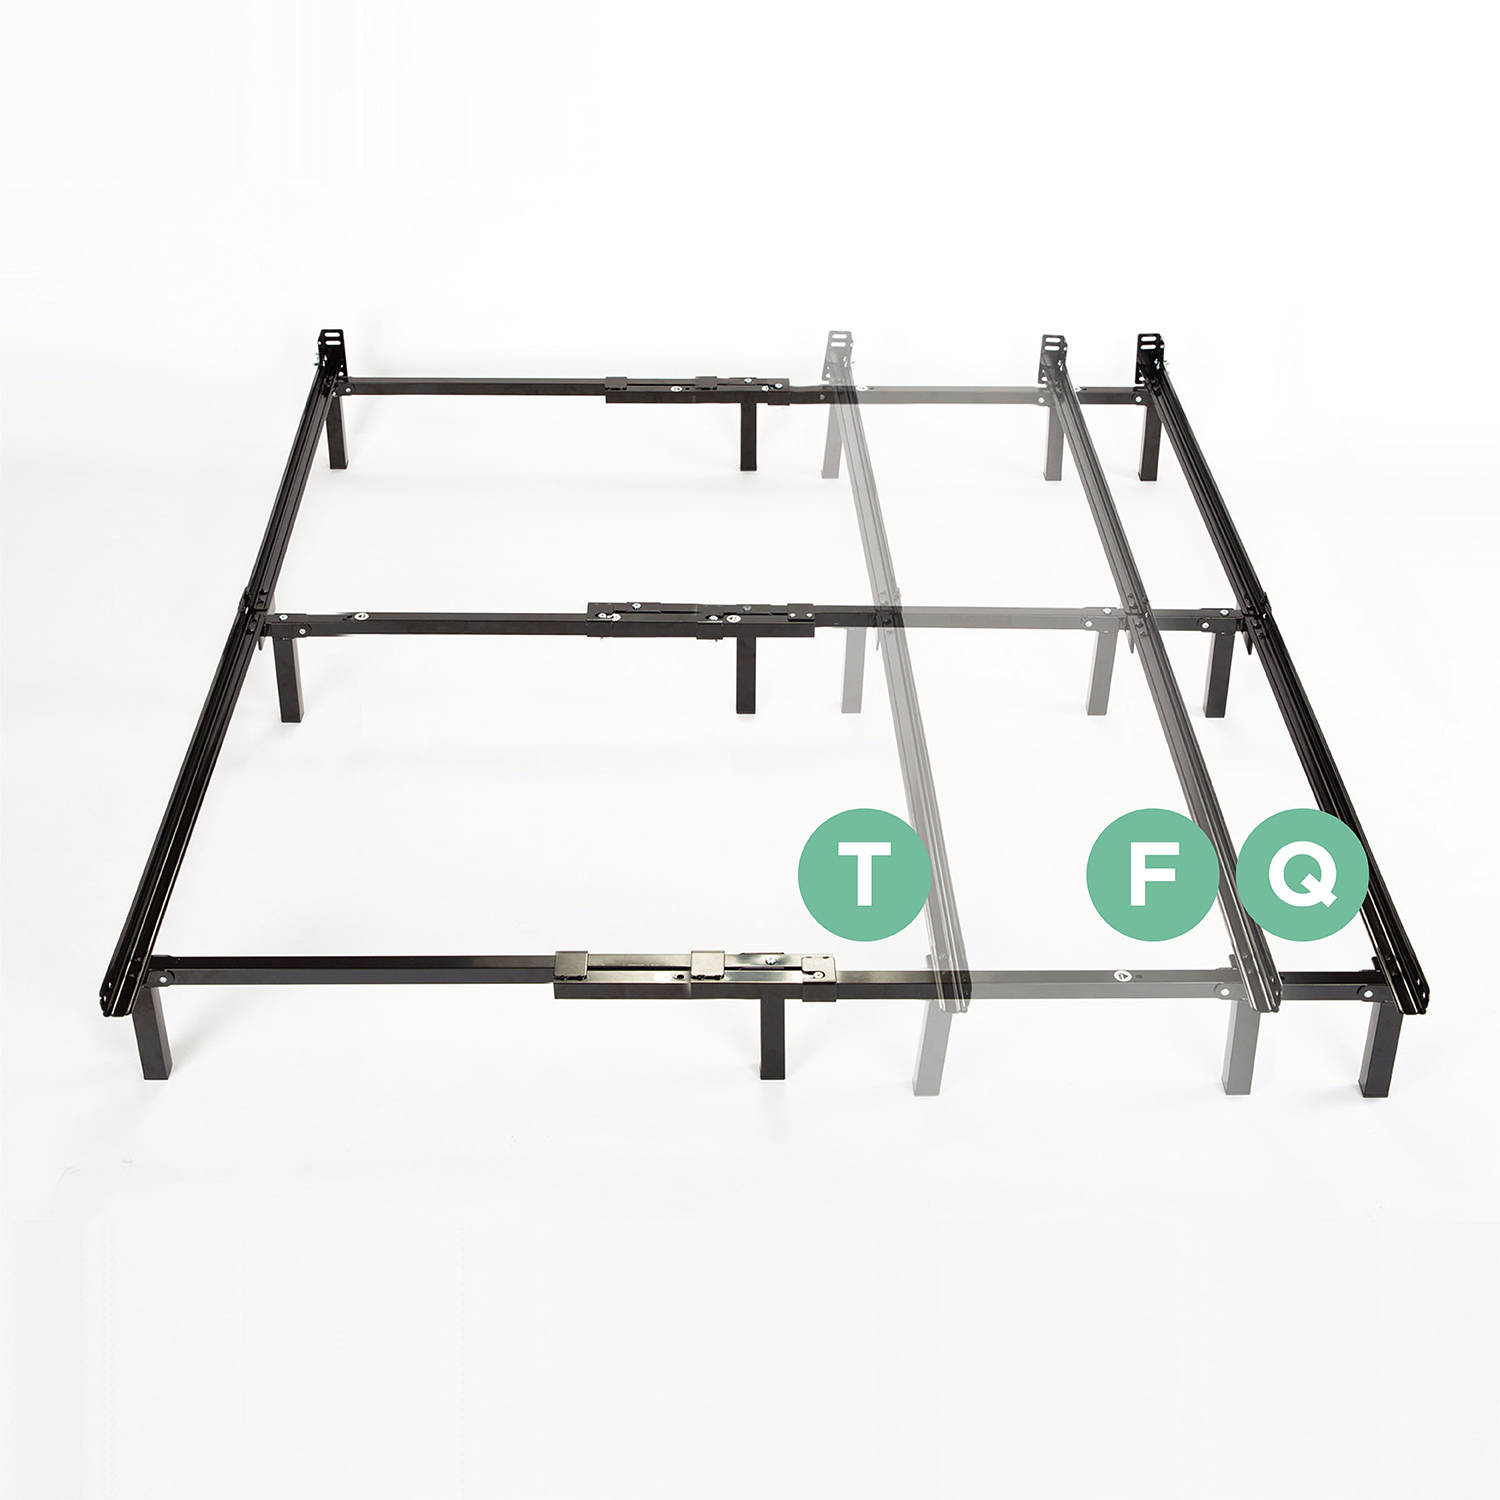 "Spa Sensations Compact 7"" Adjustable Metal Bed Frame"